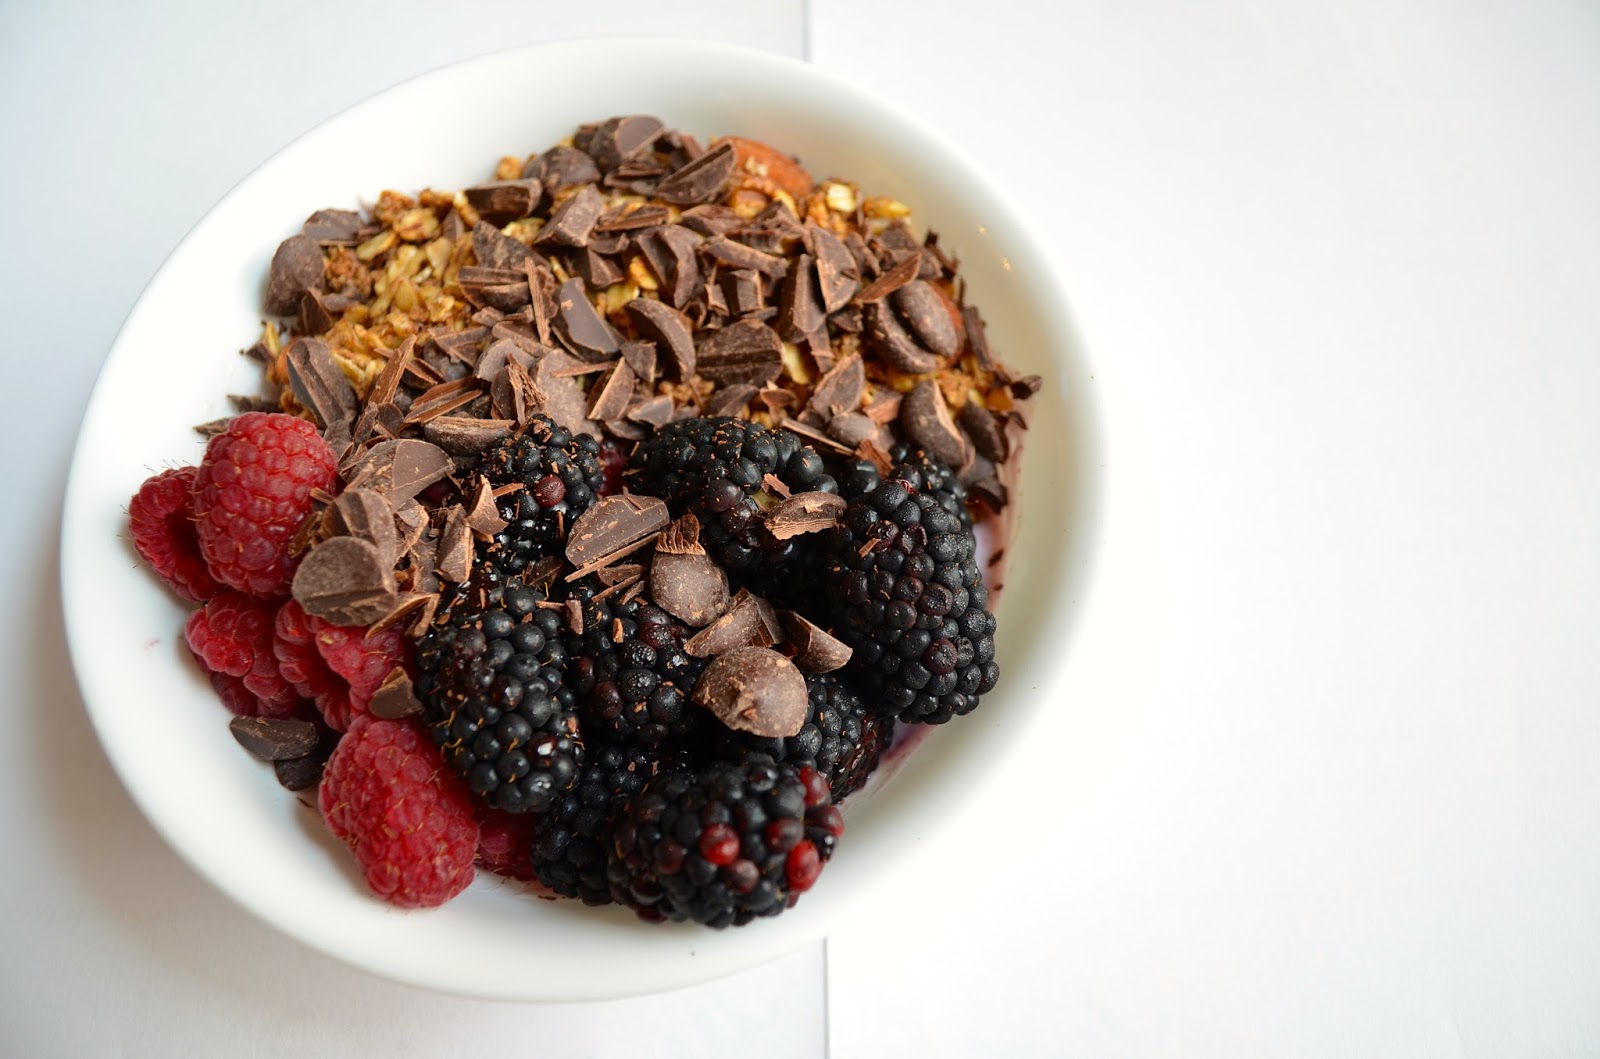 Berries, Granola, Greek Yogurt, and Chocolate